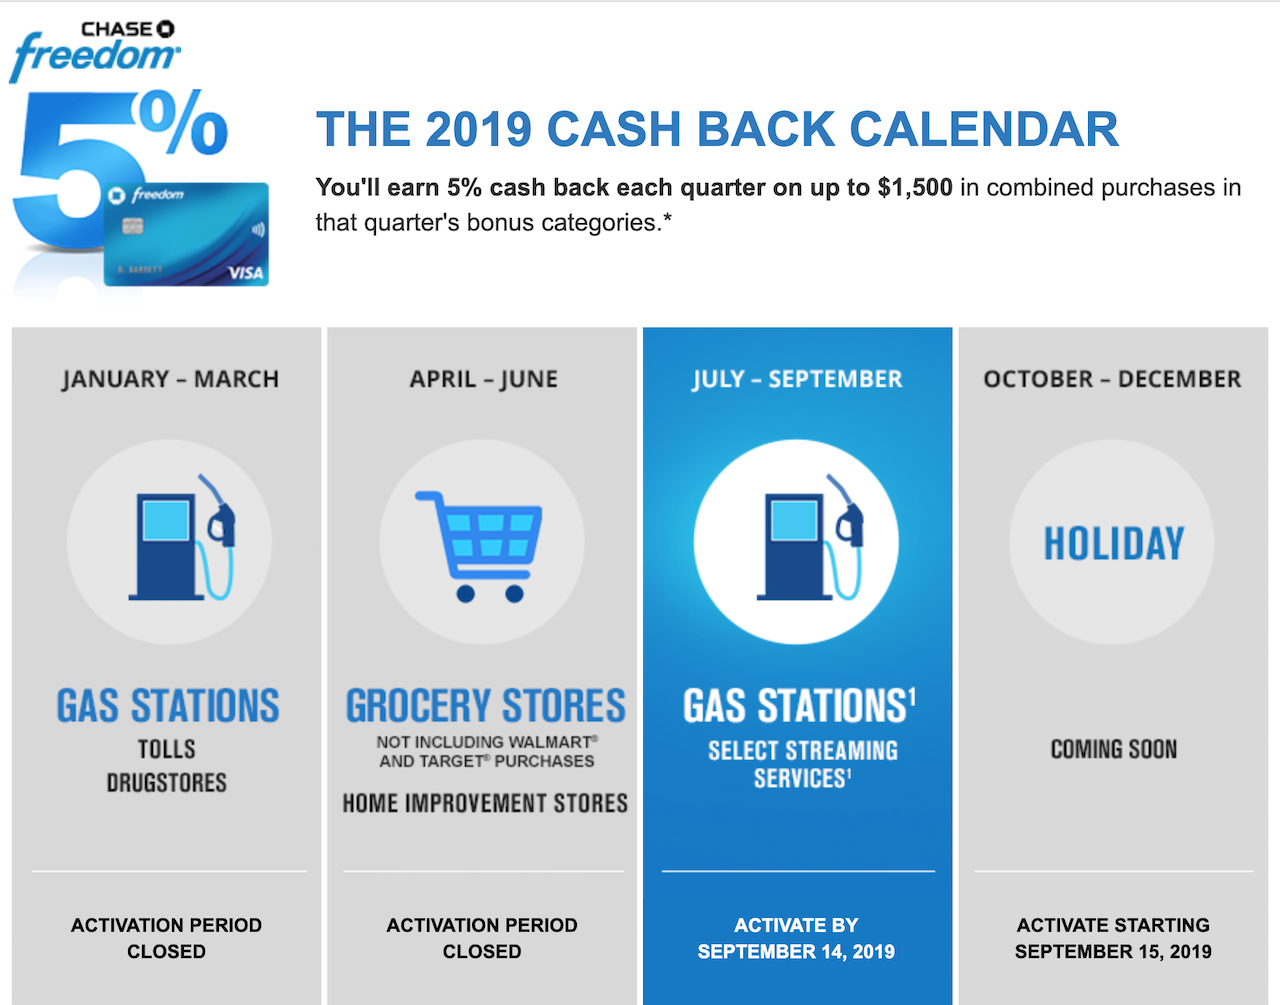 discount disney gift cards chase freedom calendar 2019.png